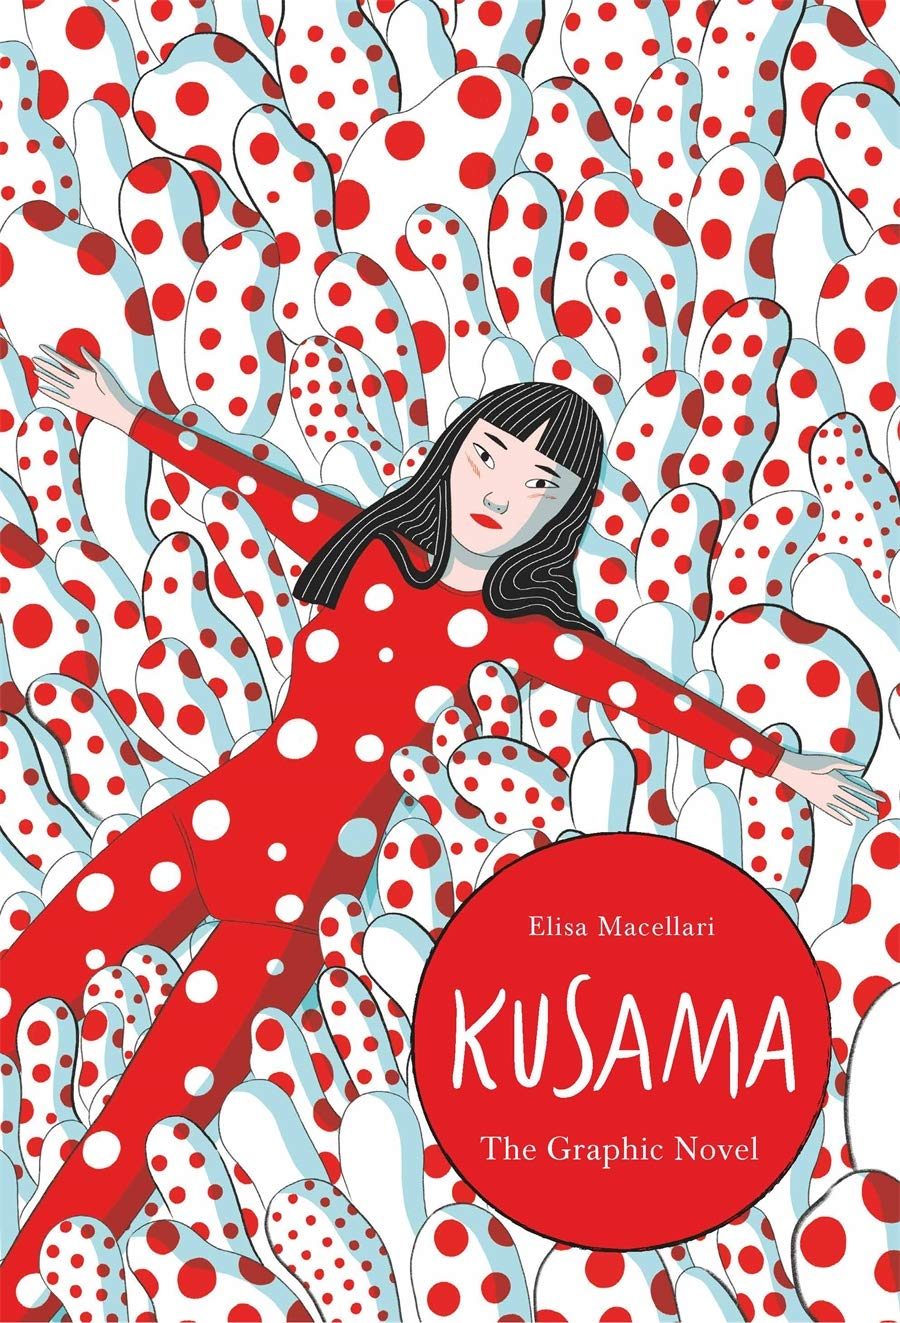 Kusama: The Graphic Novel by Elisa Macellari (Author)